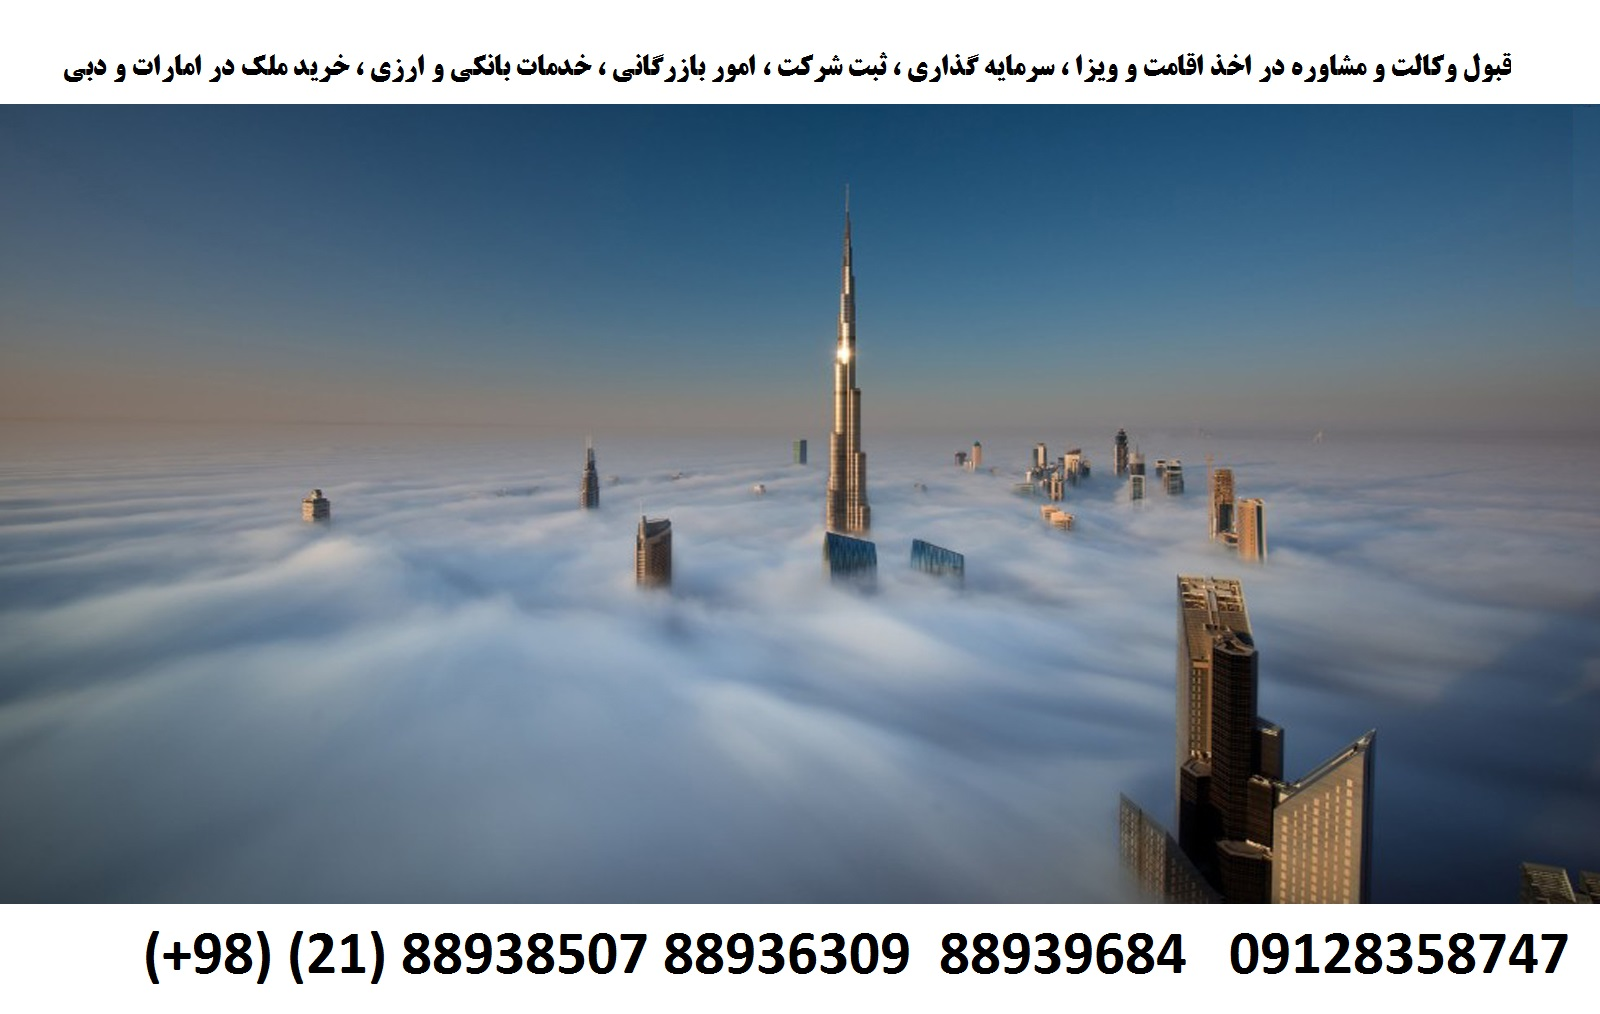 "Image #: 22381363 ***EXCLUSIVE*** ASTOUNDING VIEWS FROM THE TALLEST BUILDING IN THE WORLD - Photograph captured from the 79th floor of the Index Tower, looking over the mystical clouds that formed over Dubai. With the mystical clouds forming a thick blanket and the electrifying lights below, these stunning pictures provide a unique view of the cityscape of Dubai taken from the tallest building in the world.Home to one of the best skylines across the globe and the biggest skyscraper on the planet, the city makes for some impressive views, but none are more astounding than this collection of images taken from the 101st floor in the Burj Khalifa. Photographer Daniel Cheong, 50, spent hours at the top of the phenomenal building capturing the amazing aerial shots. The building forms the centrepiece of Downtown Dubai, which was recently ranked as having the fifth best skyline in the world. He said: ""I believe that a city always looks more beautiful from a high vantage point than ground level."" HotSpot /Landov"